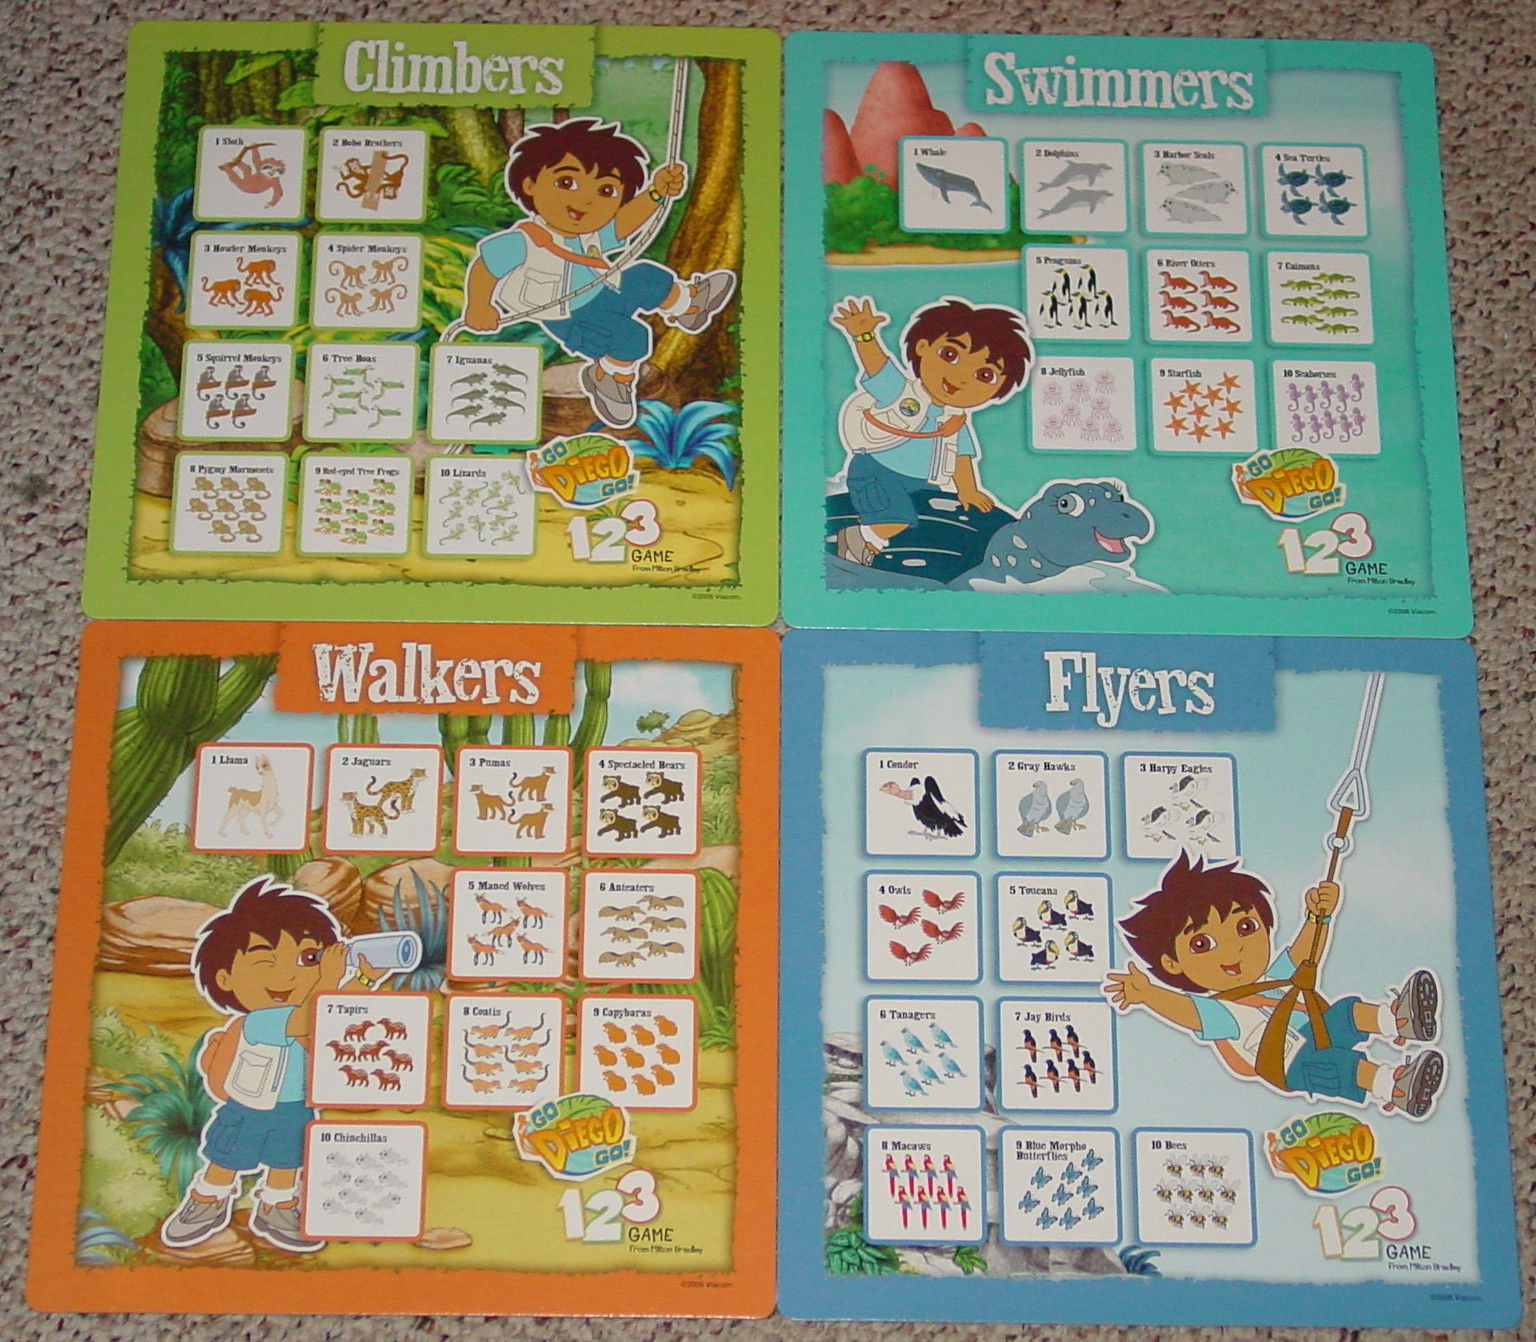 ... NICK JR GO DIEGO GO 123 GAME MILTON BRADLEY PRESCHOOL GAME 2006 COMPLETE